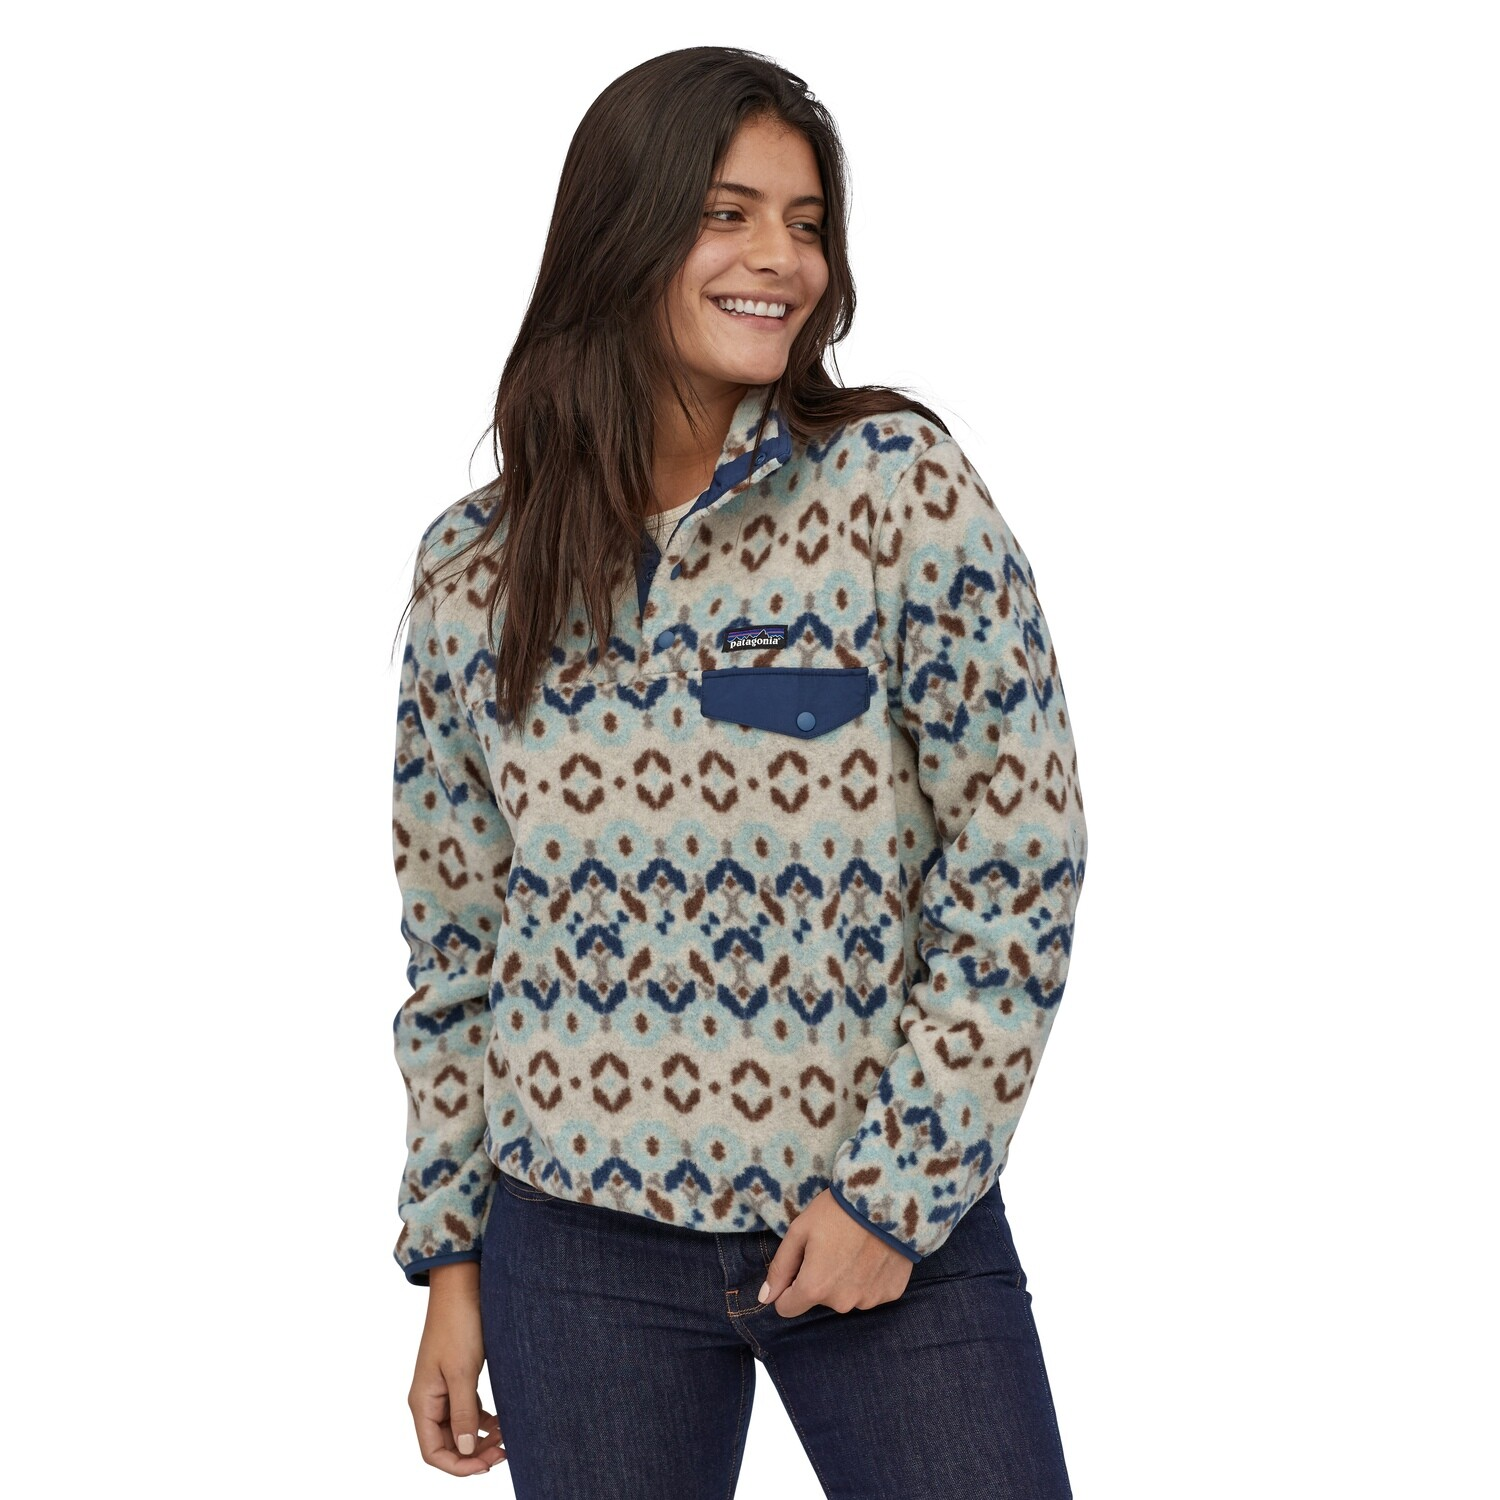 PATAGONIA LW Synch SnapT P/O